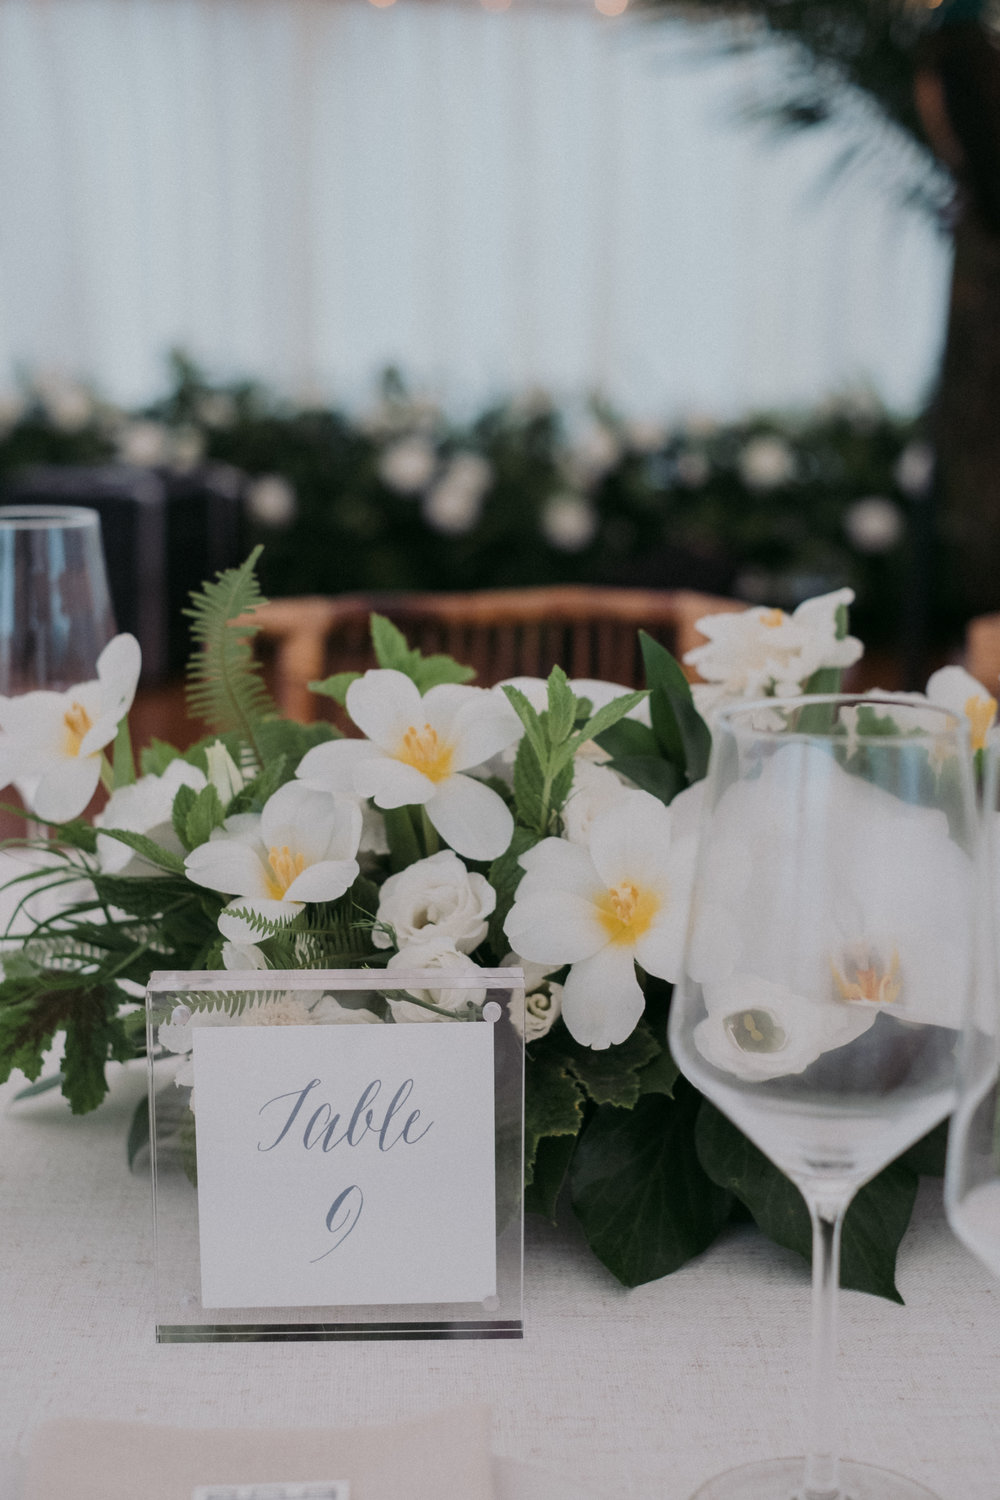 Same Sex Wedding in Provincetown, MA. Destination wedding planned by Nicole Simeral. Coastal Chic Wedding, Travel Wedding, Sperry Sailcloth Tent Wedding, bamboo folding chairs, Belfast linen, whites and greens , straw lantern, centerpiece, tulips, ferns, table numbers, chic